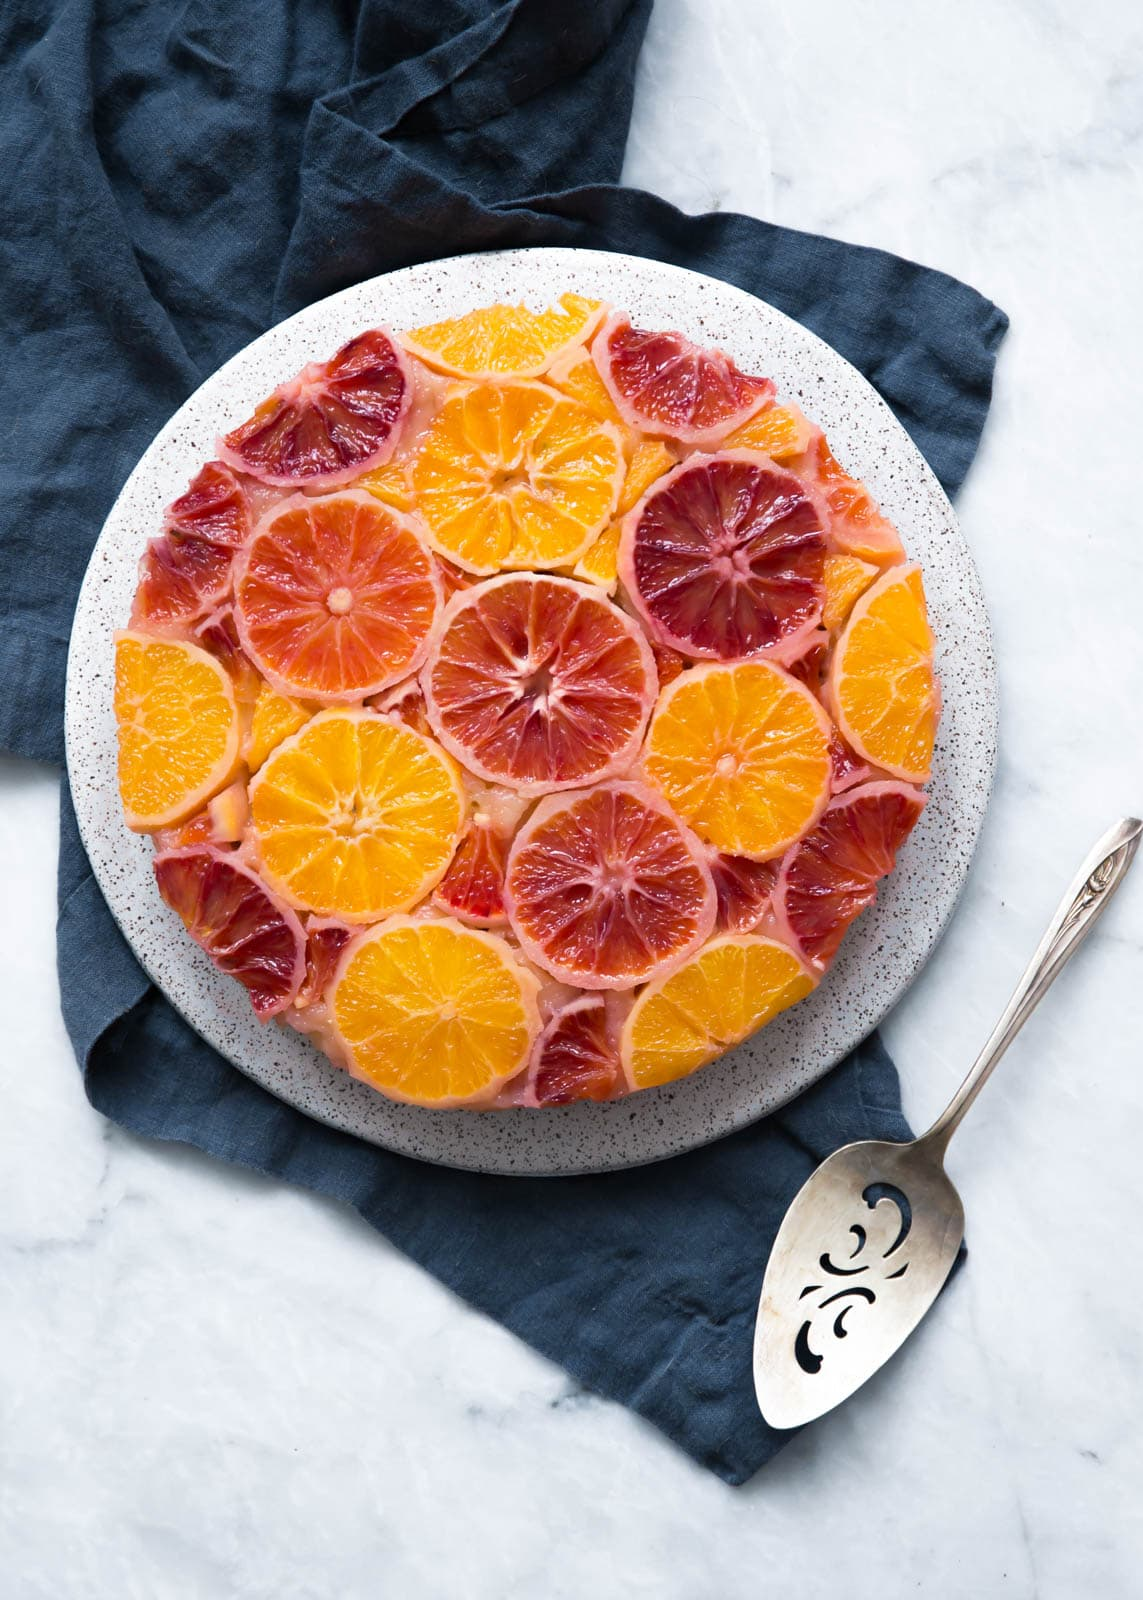 An easy upside down winter citrus cake that will brighten anyone's day.